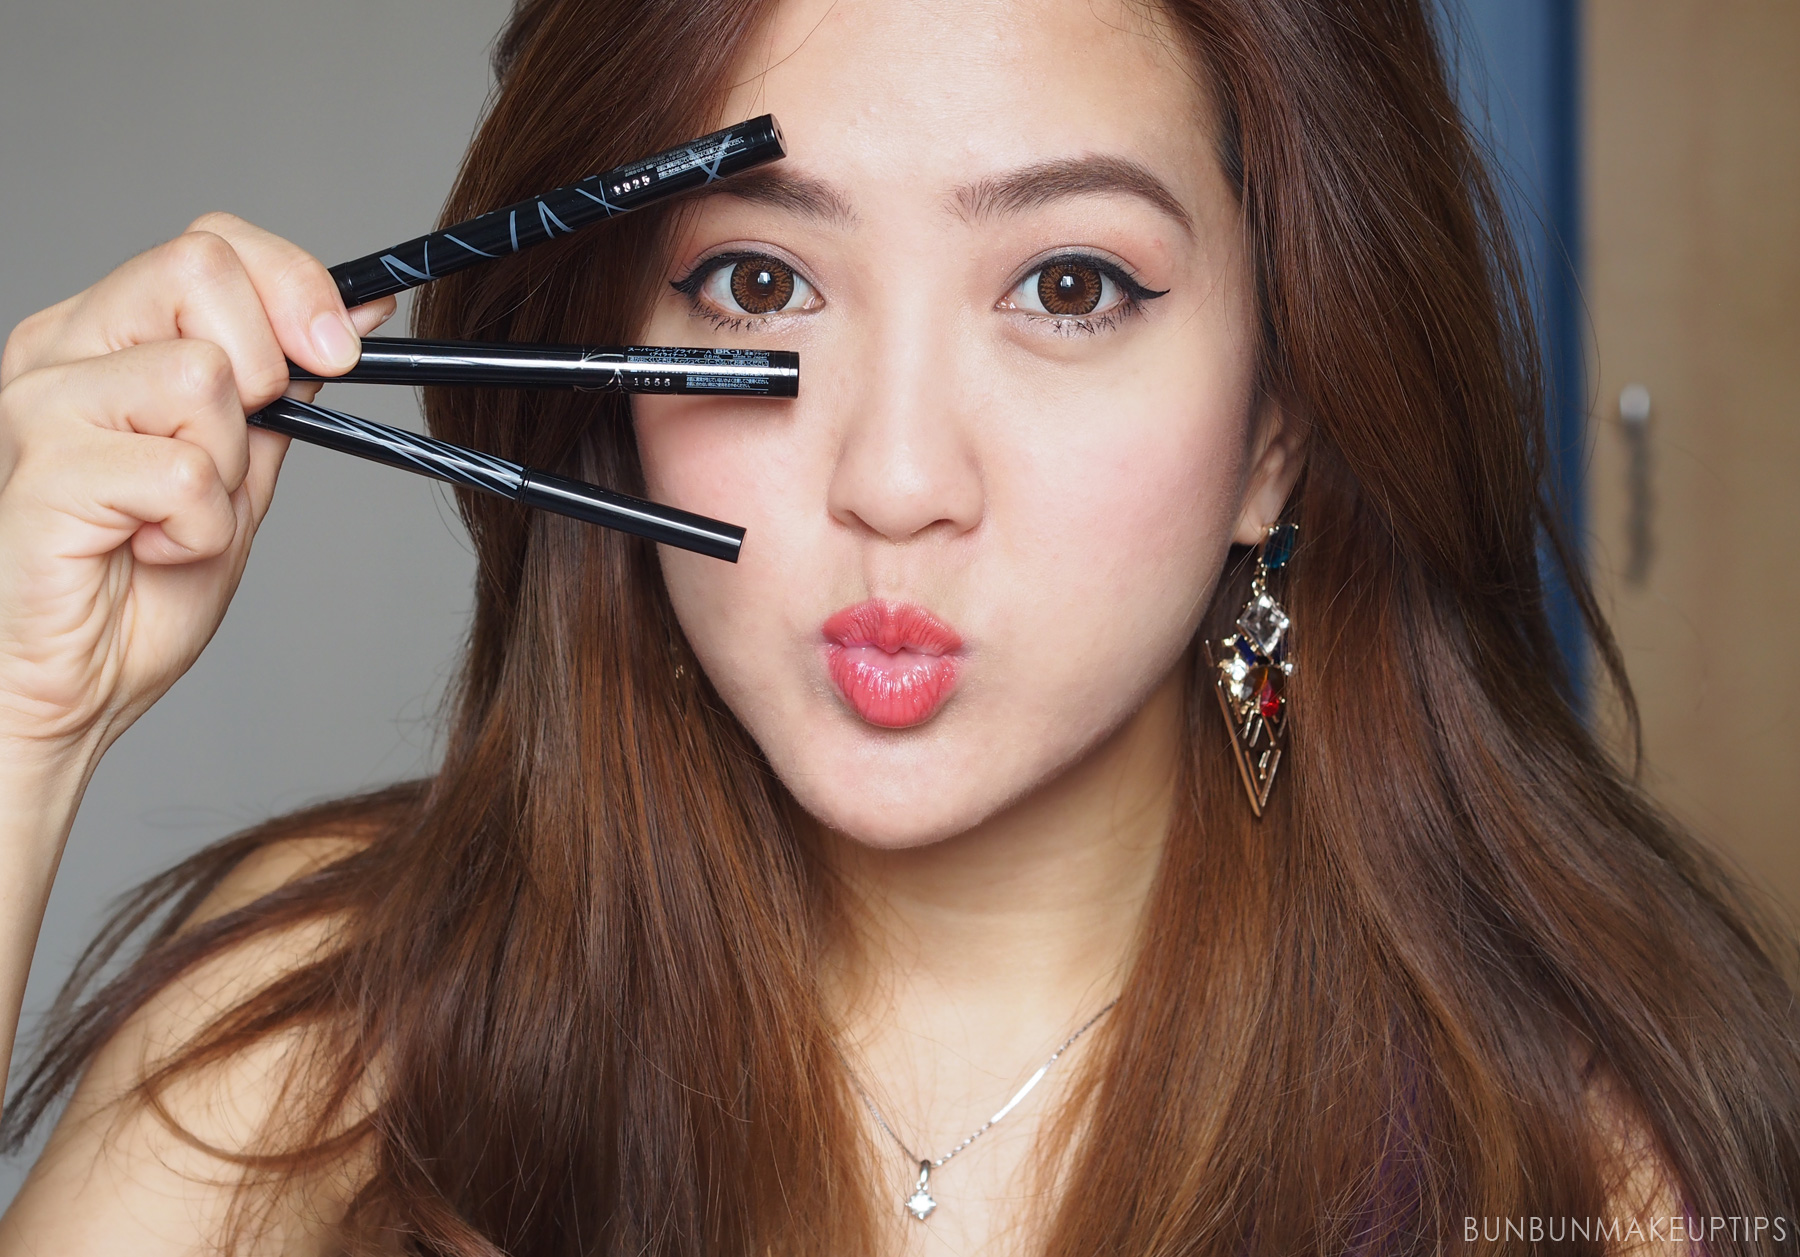 Kate-Super-Sharp-Liner,-Quick-Eyeliner,-Slim-Gel-Pencil-Review_3